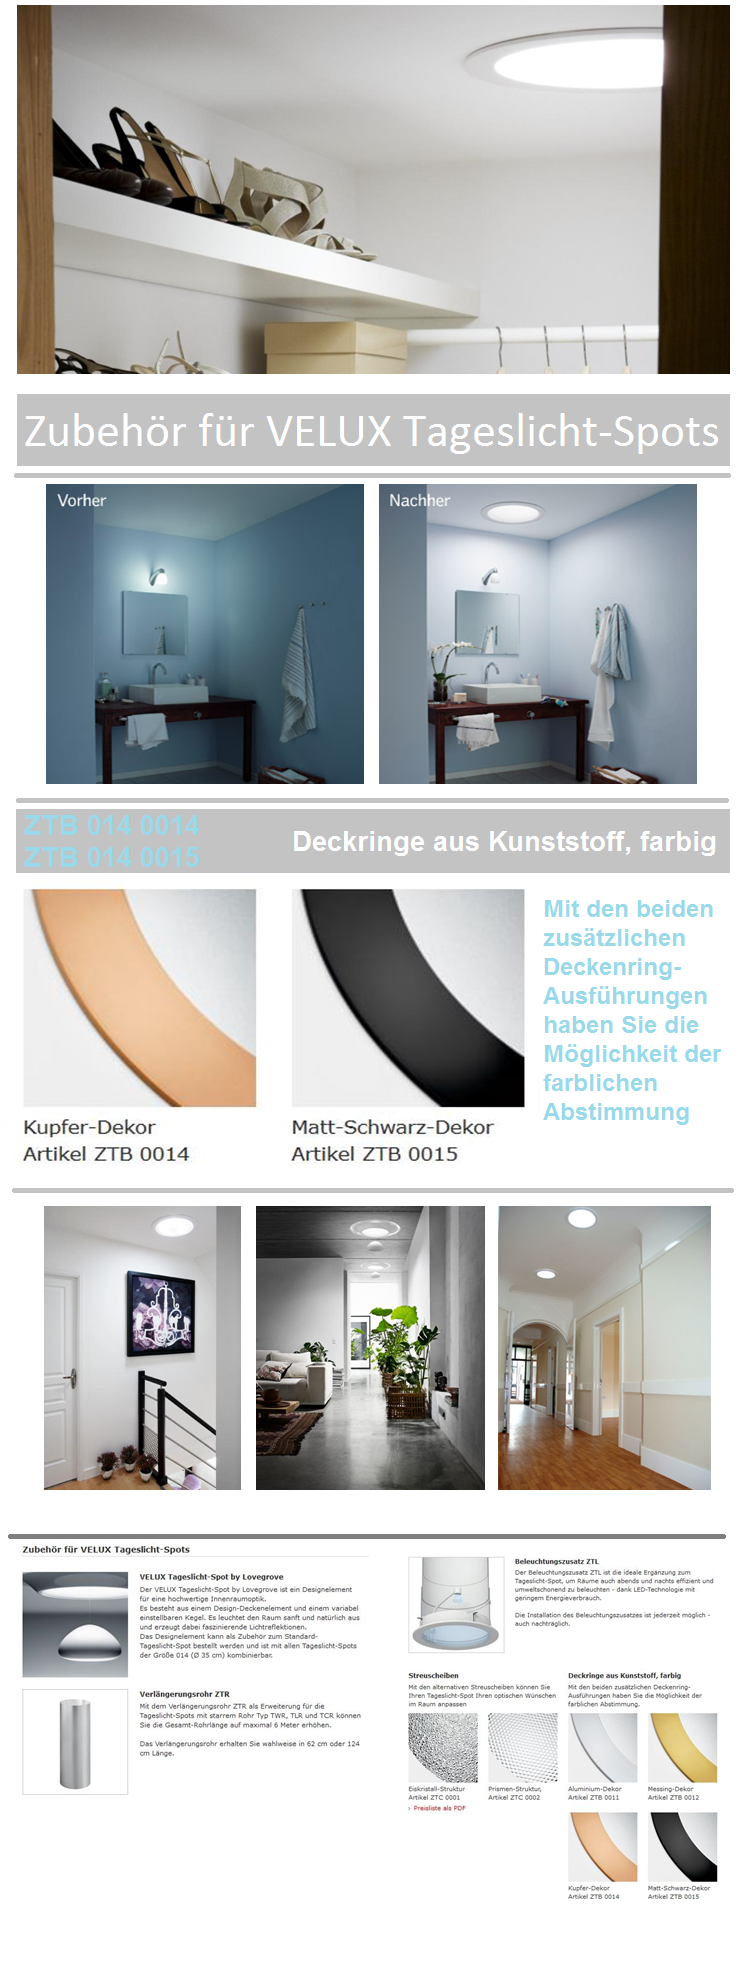 matt schwarz dekor artikel ztb 0015 velux tageslicht spot. Black Bedroom Furniture Sets. Home Design Ideas